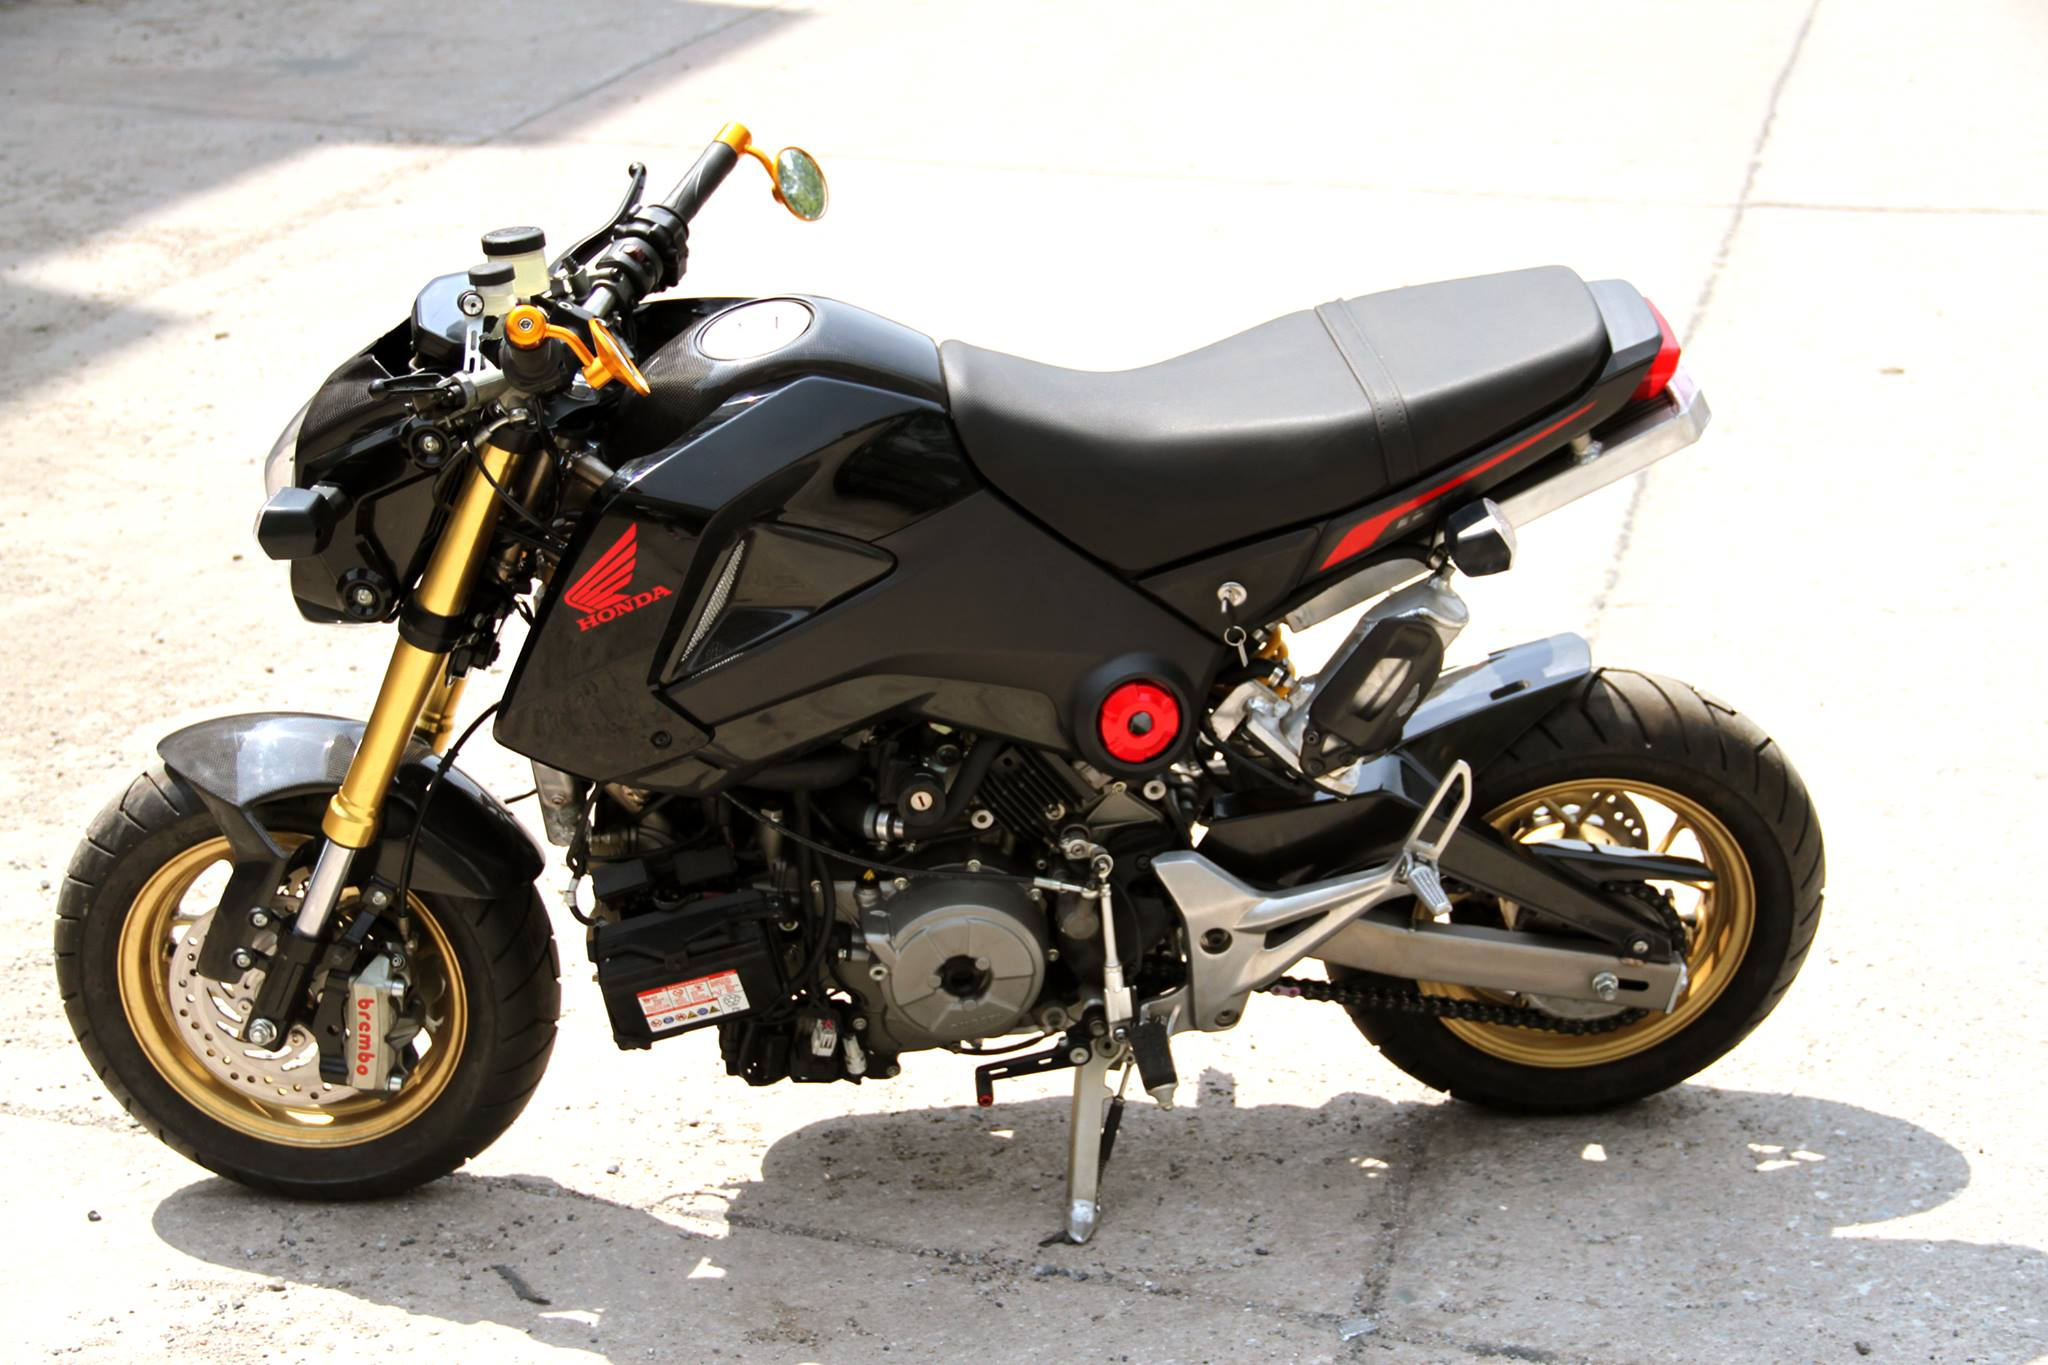 Ducati 1199 Panigale-Powered Honda Grom Is as Insane as It